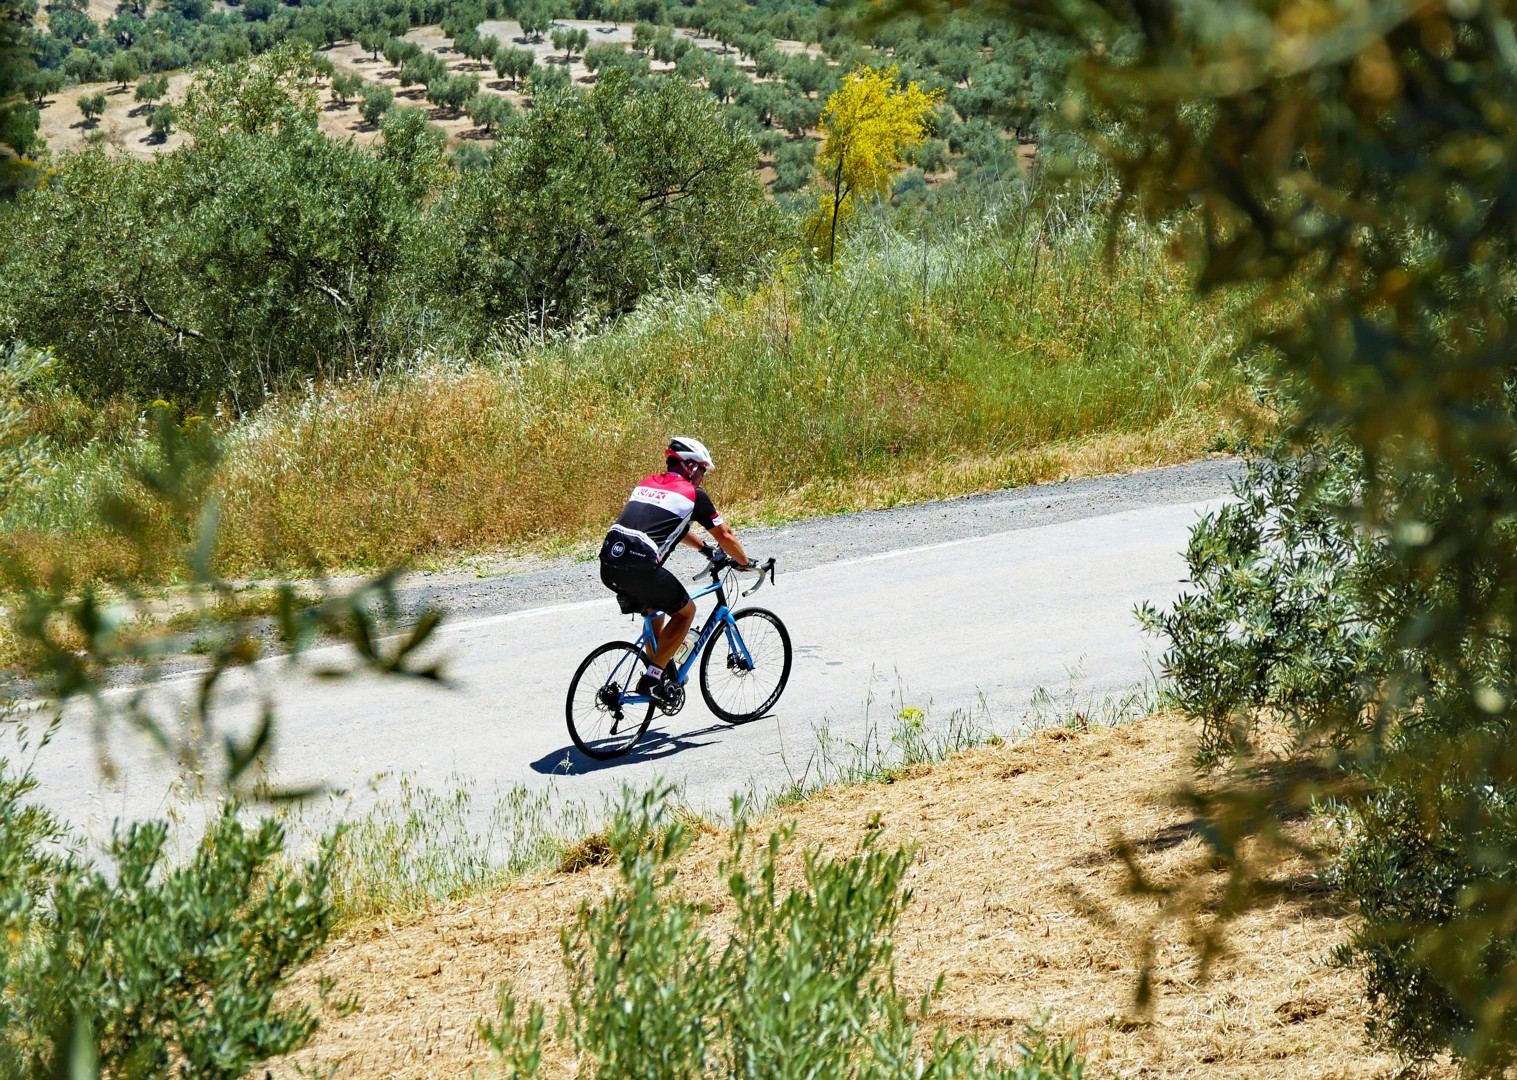 road-cycling-through-olive-groves-andalucia.jpg - Spain - Basque Country to Andalucia - North to South - 21 Day - Guided Road Cycling Holiday - Road Cycling